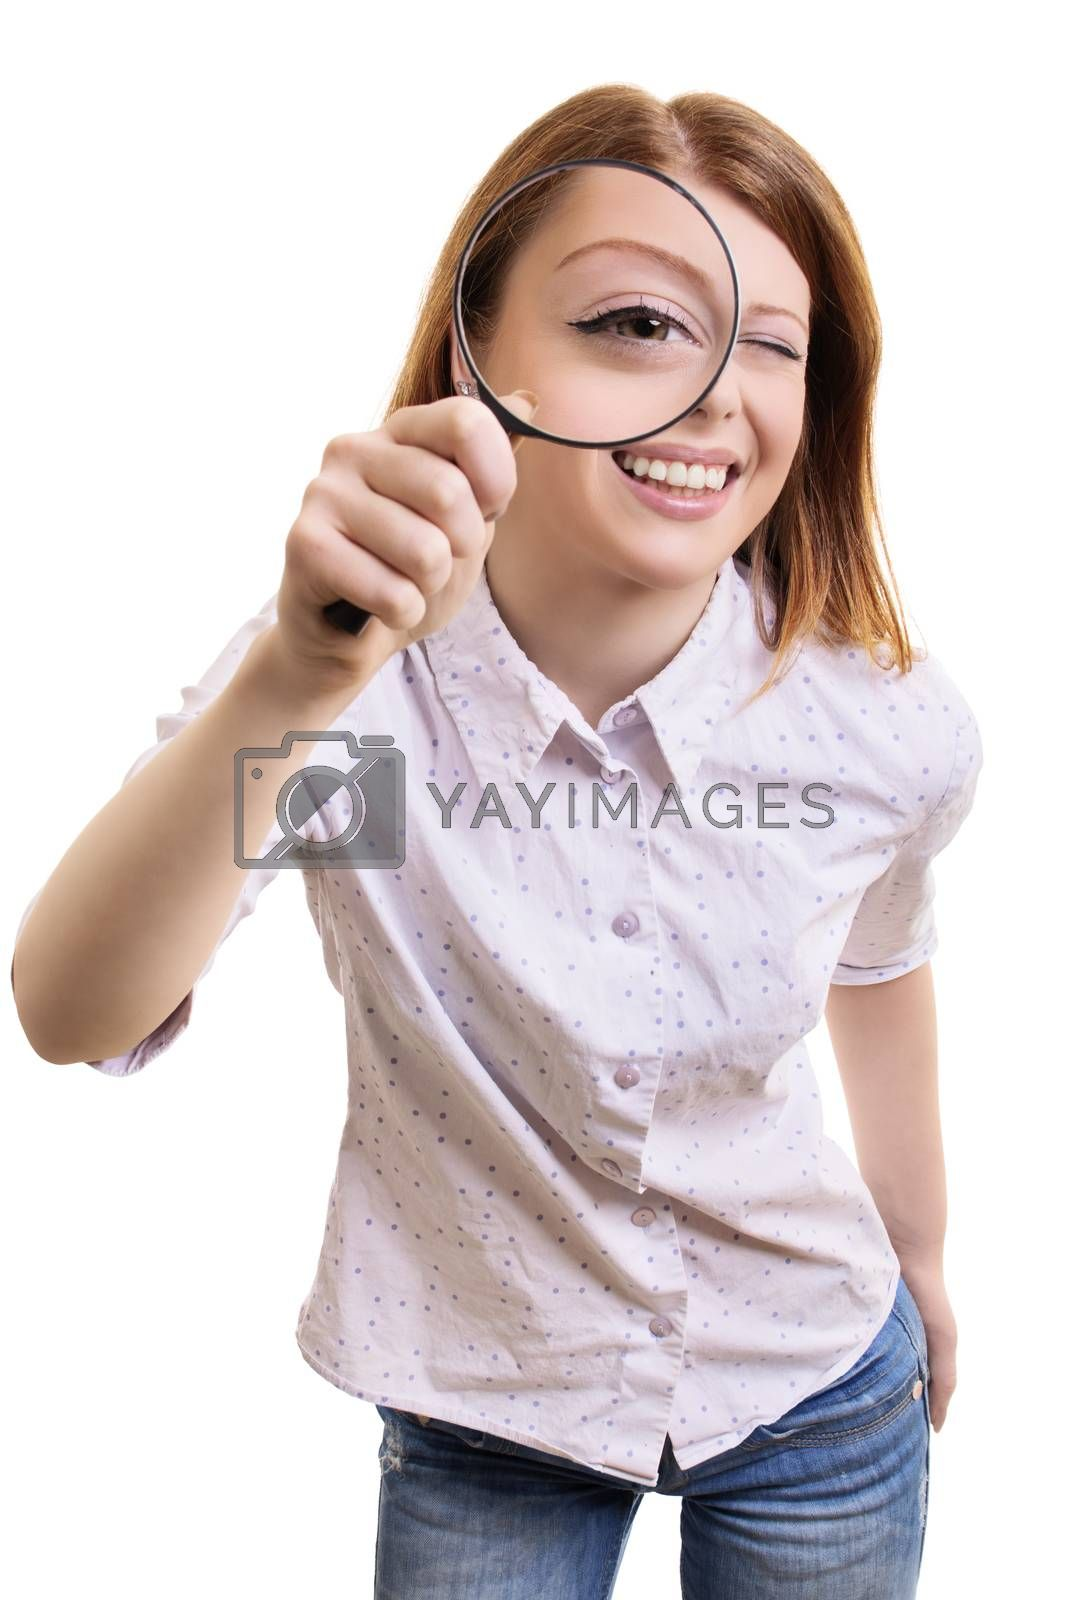 Close up portrait of a cheerful pretty young woman looking at camera through magnifying glass, isolated on white background.